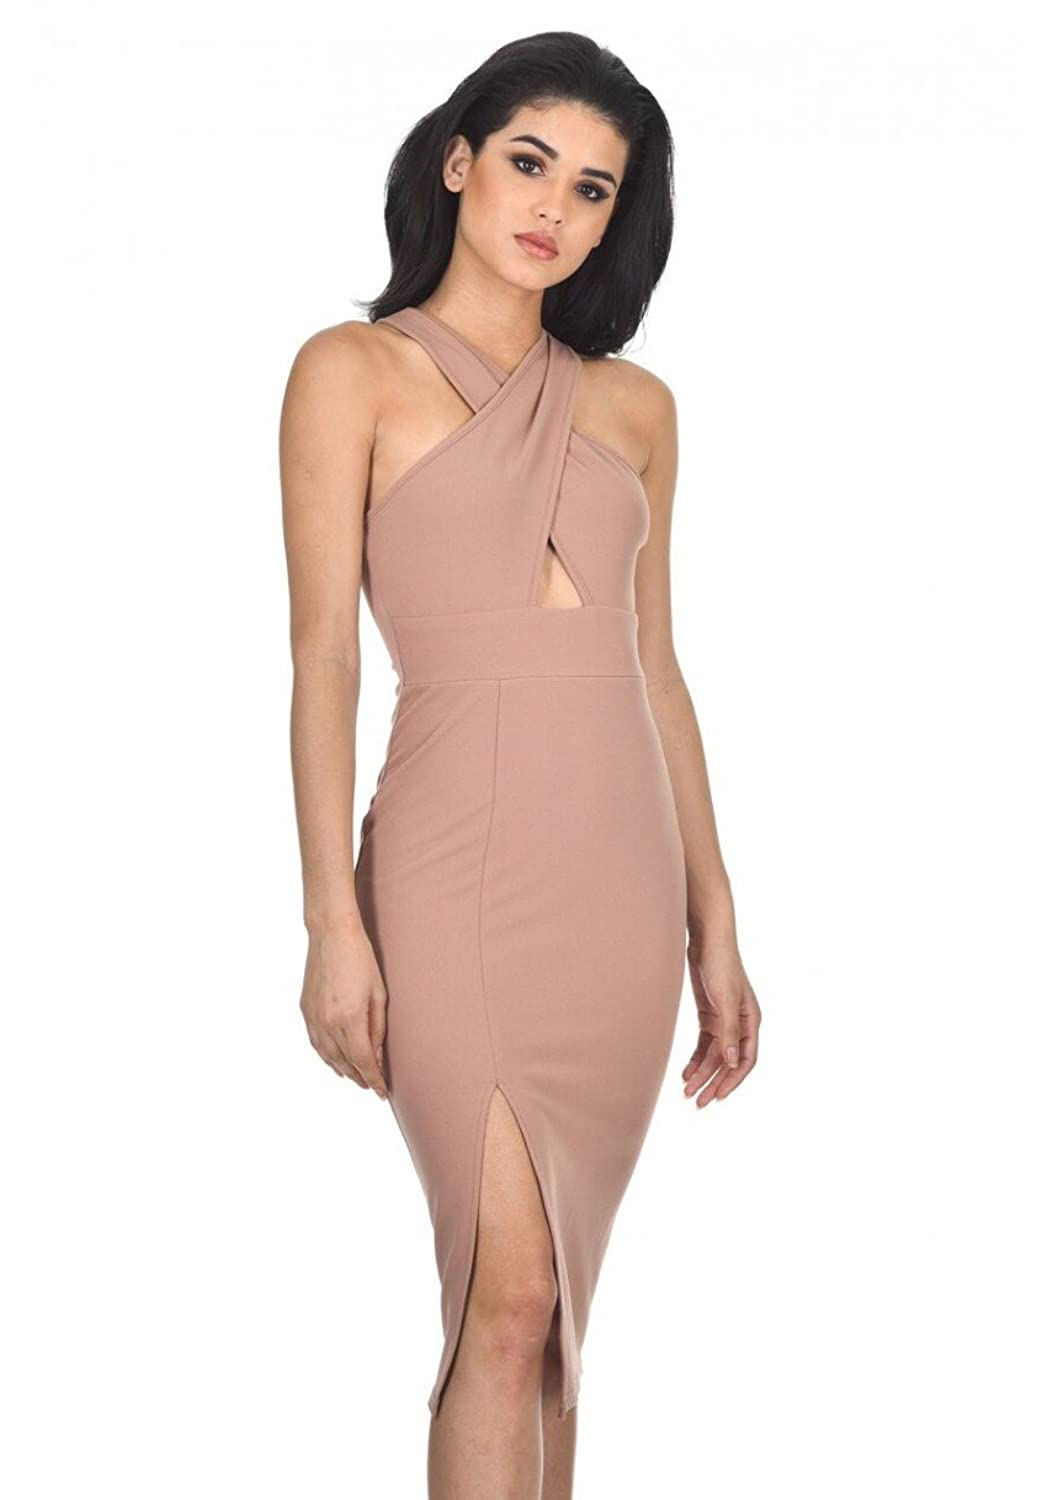 b959e503641 Top 10 wholesale What Is A Bodycon Dress - Chinabrands.com